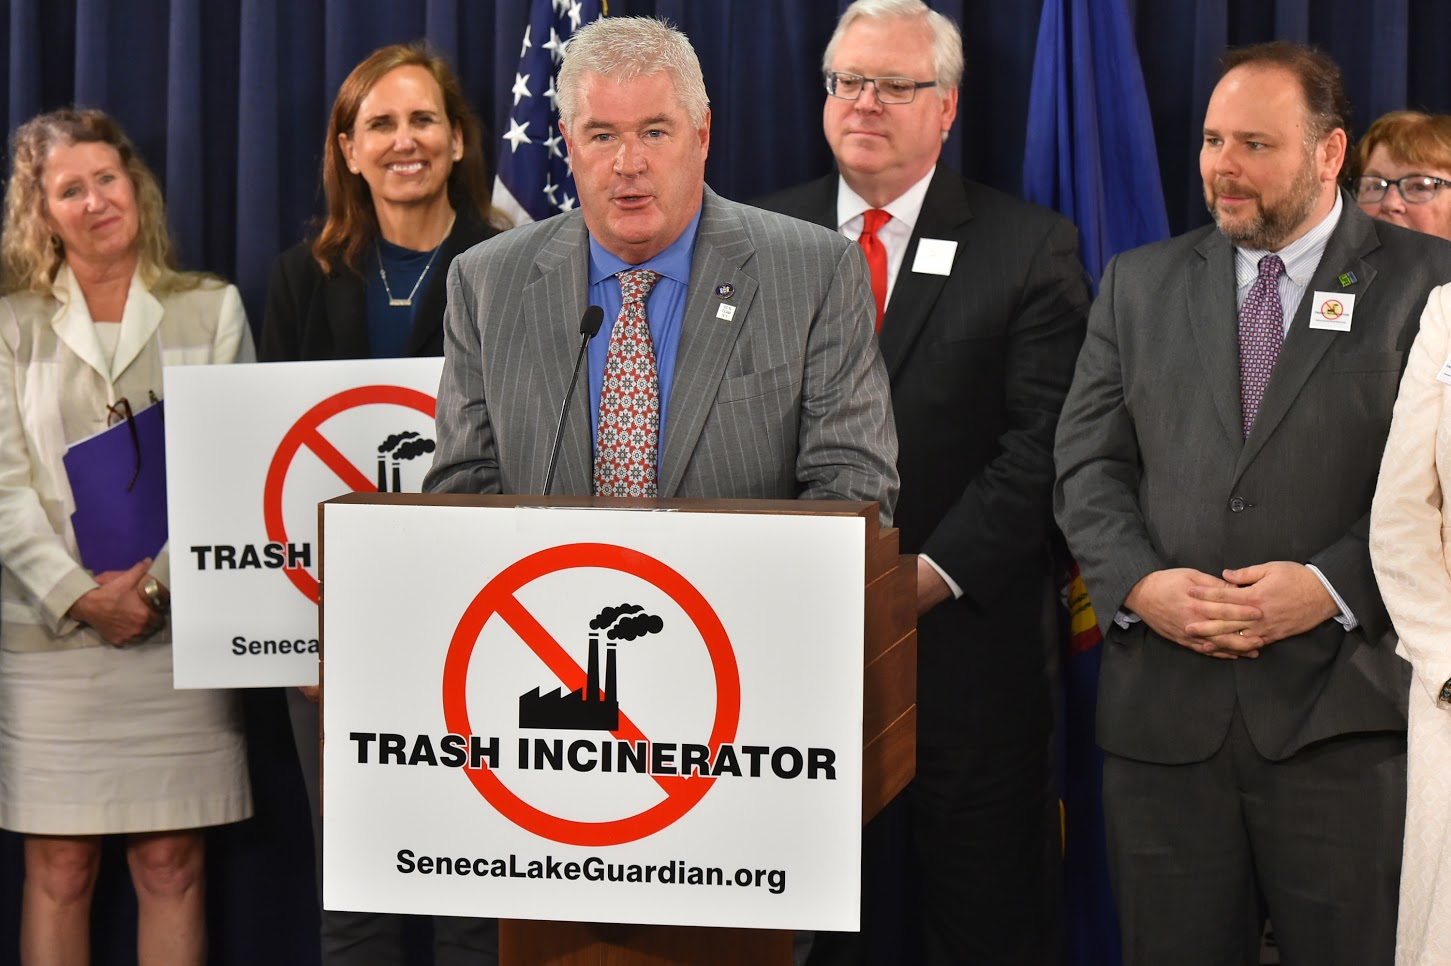 Local Lawmakers, Residents Voice Opposition to Incinerator Project in Albany